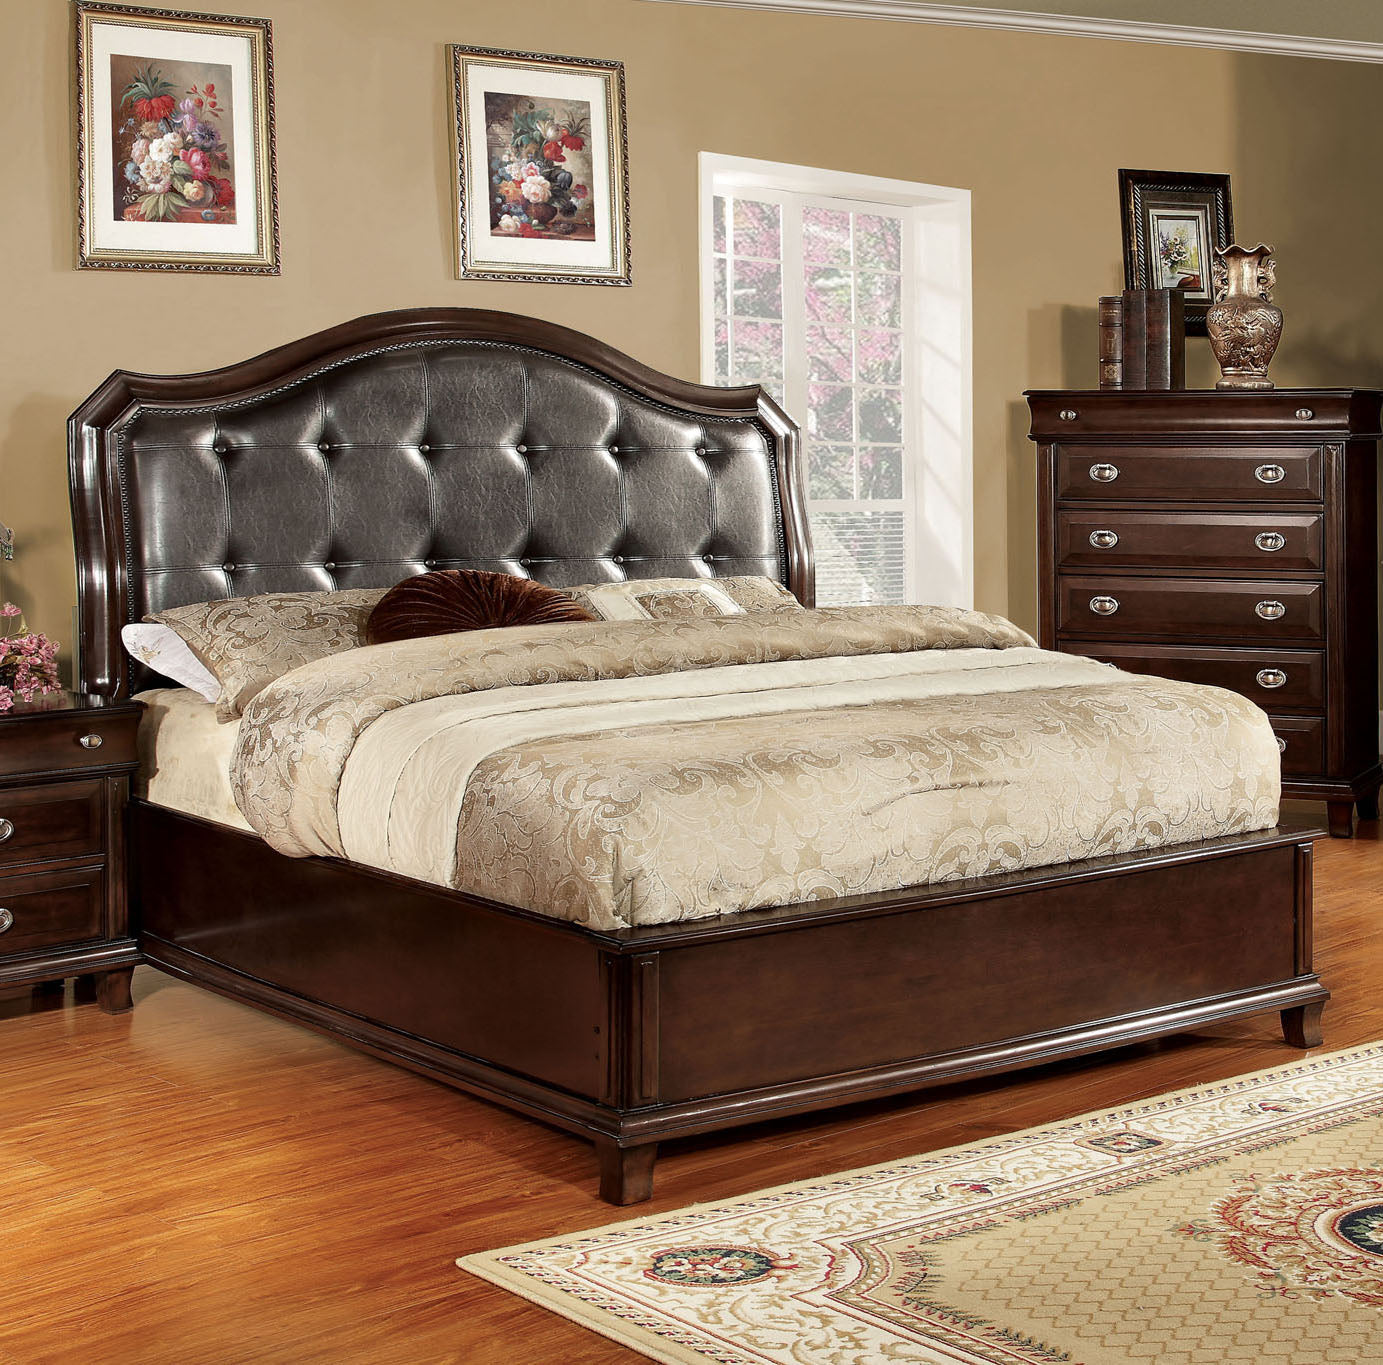 Arden CM7065EK Brown Cherry Leatherette Headboard Eastern King Bed